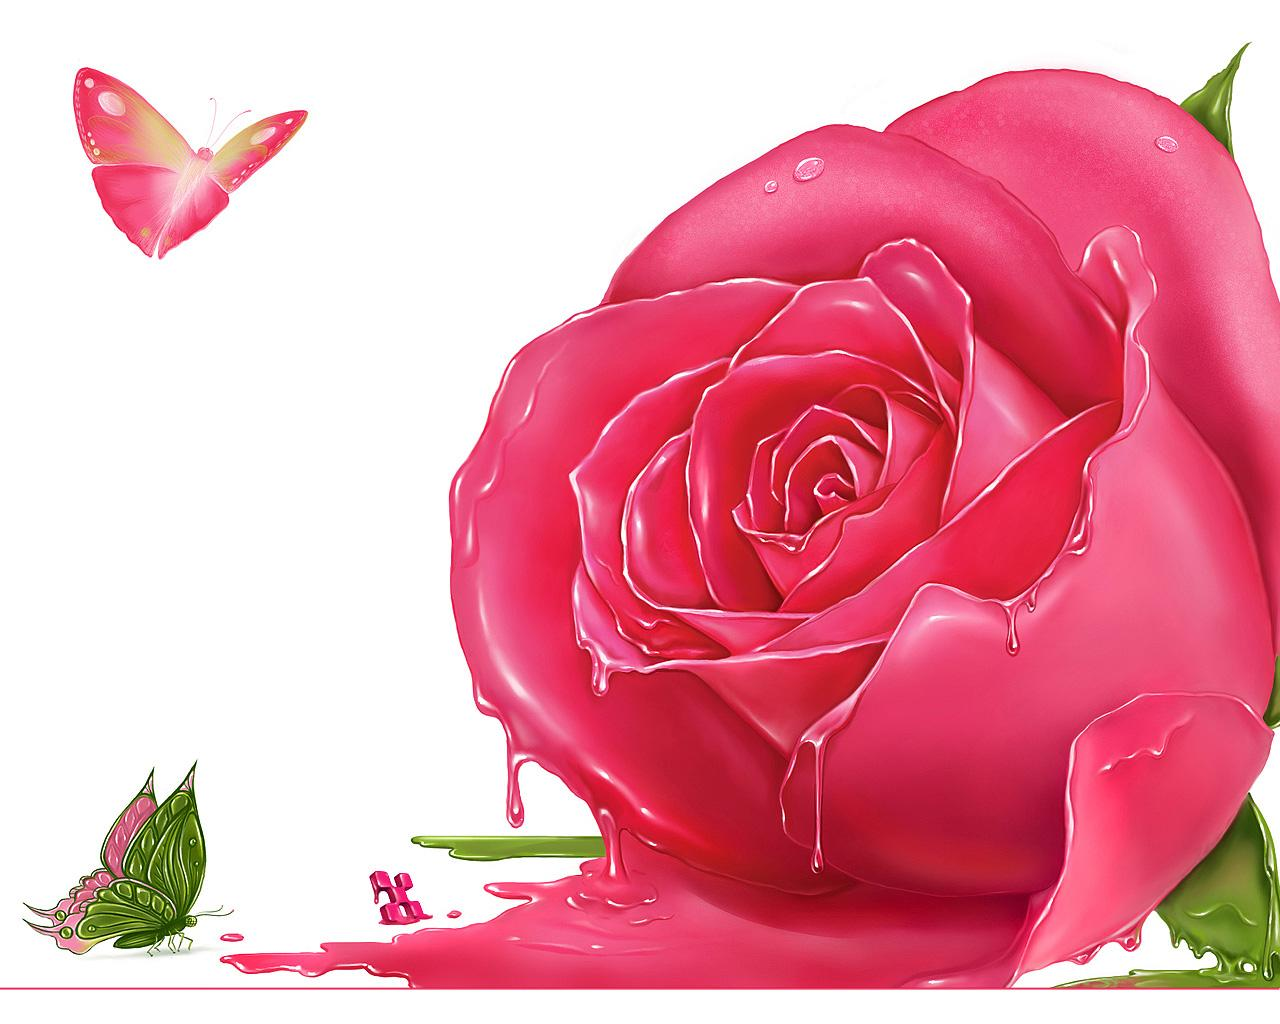 Natural hd wallpaper pink rose meaning pink roses pink rose pink rose mightylinksfo